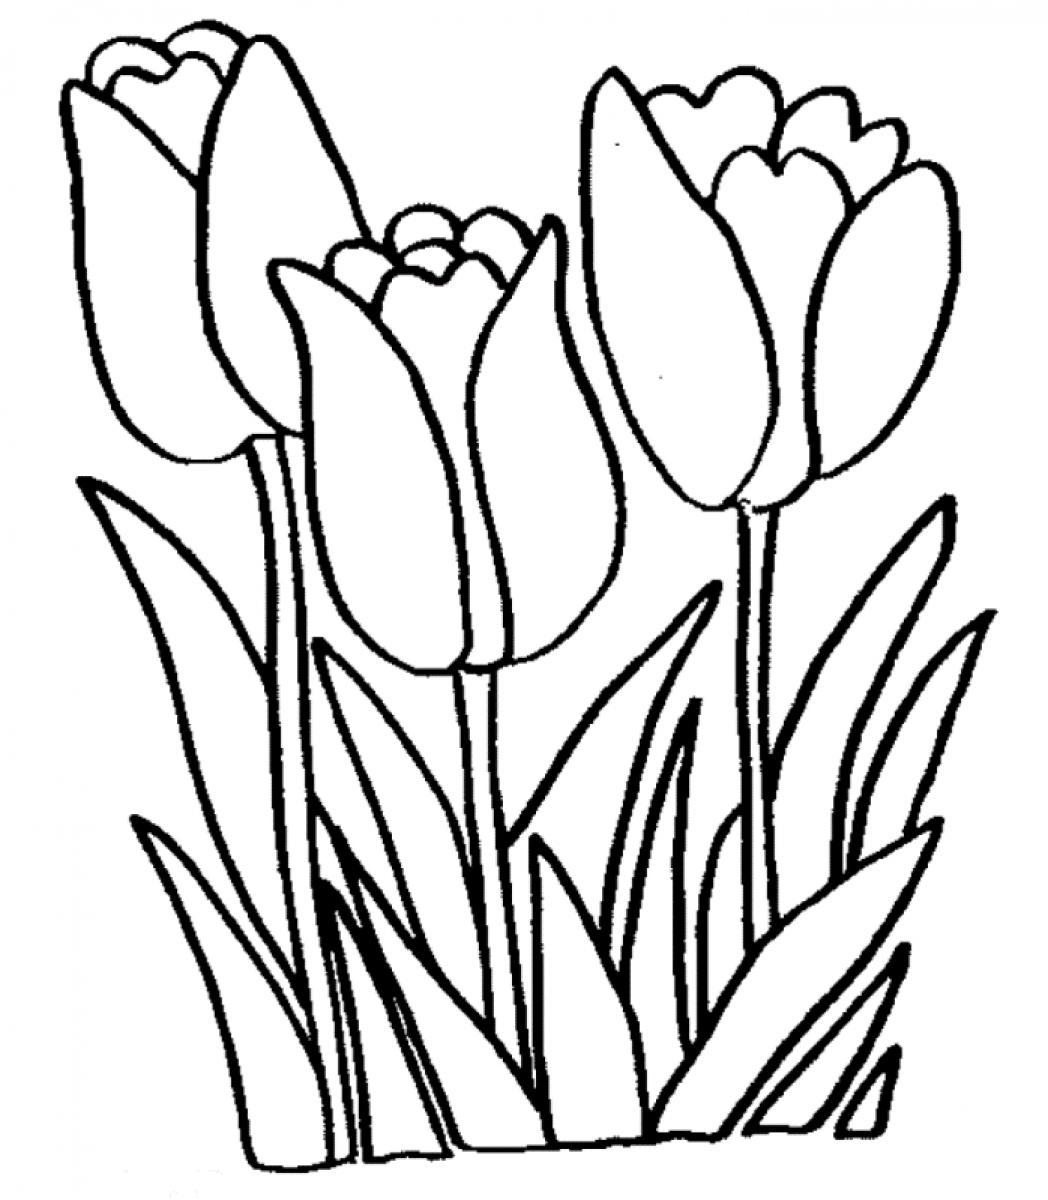 Tulip Coloring Pages - Free Printable Tulip Coloring Pages for Kids